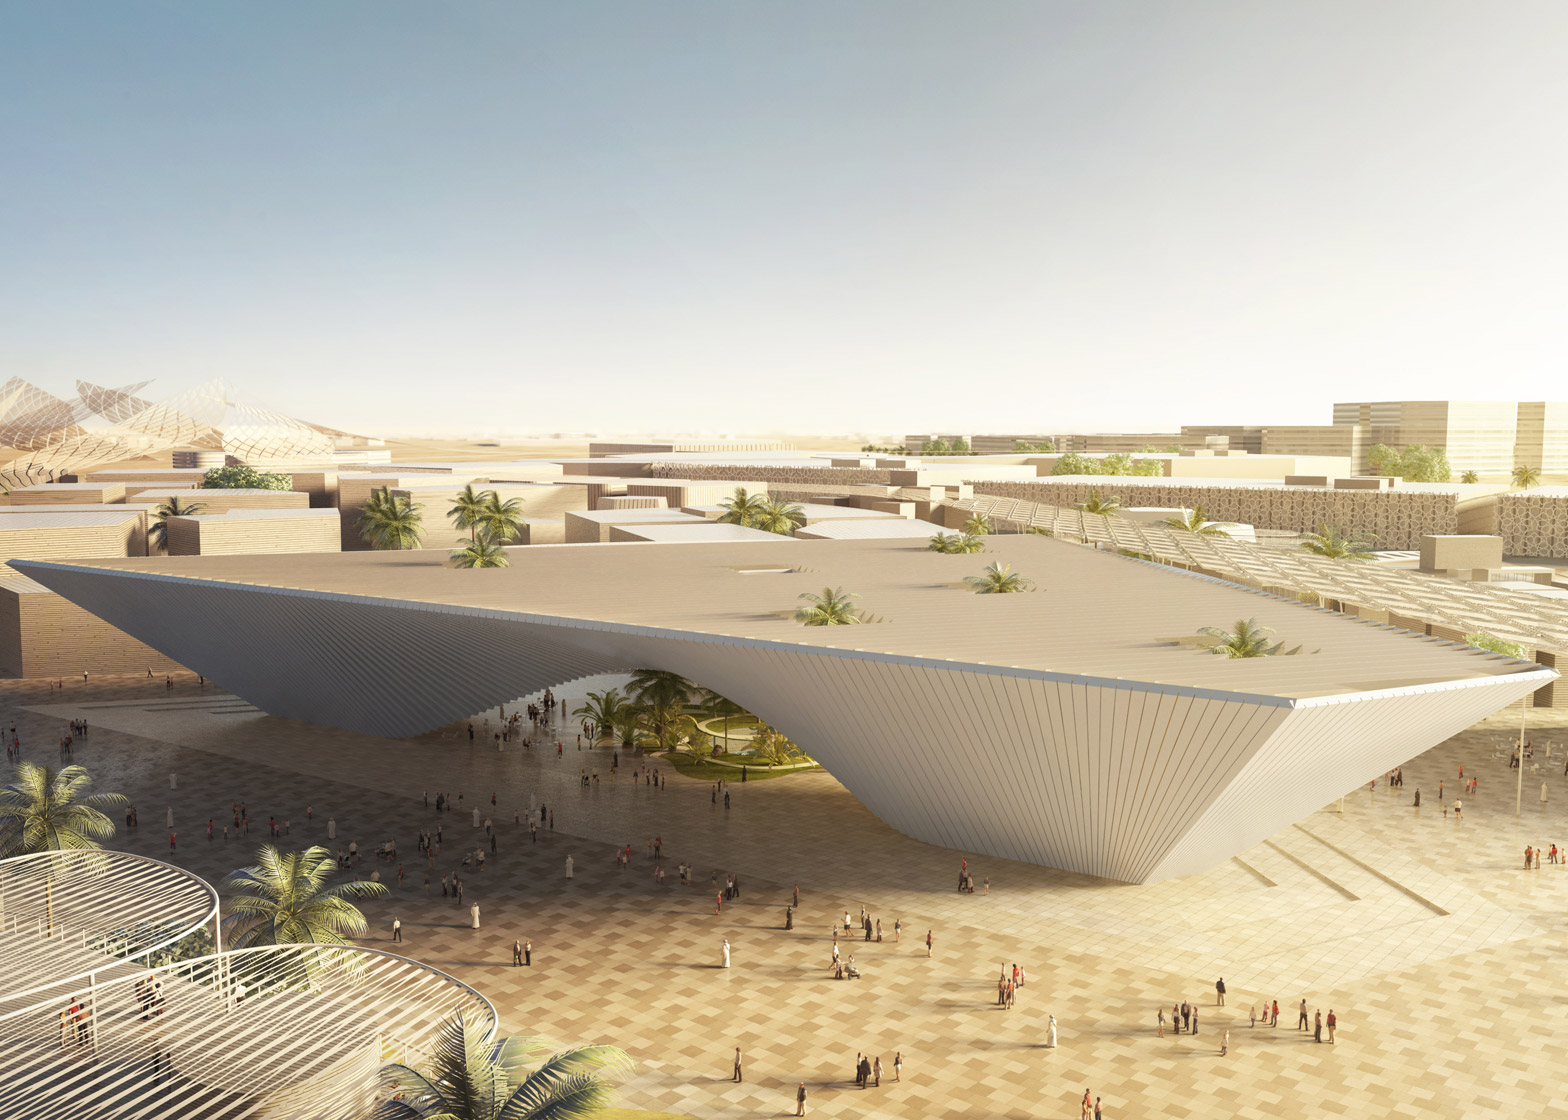 BIG's Opportunity Pavilion from the Dubai Expo 2020